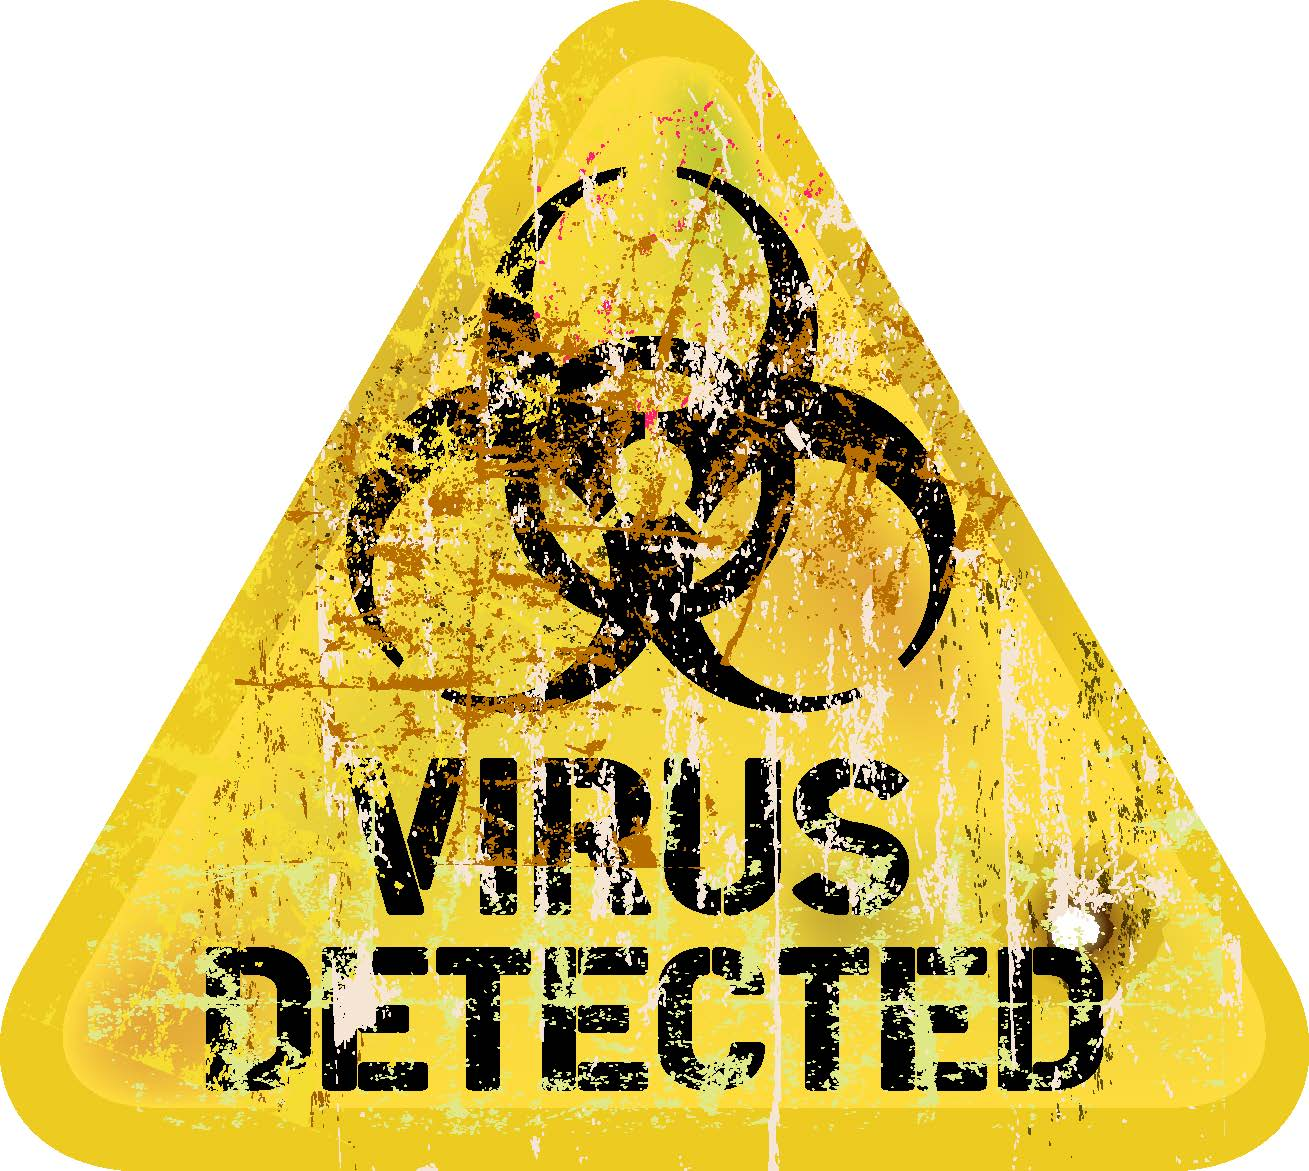 the types and dangers of computer viruses » common types and symptoms of a computer virus an even more dangerous type of virus is one capable of transmitting itself across networks and bypassing security.